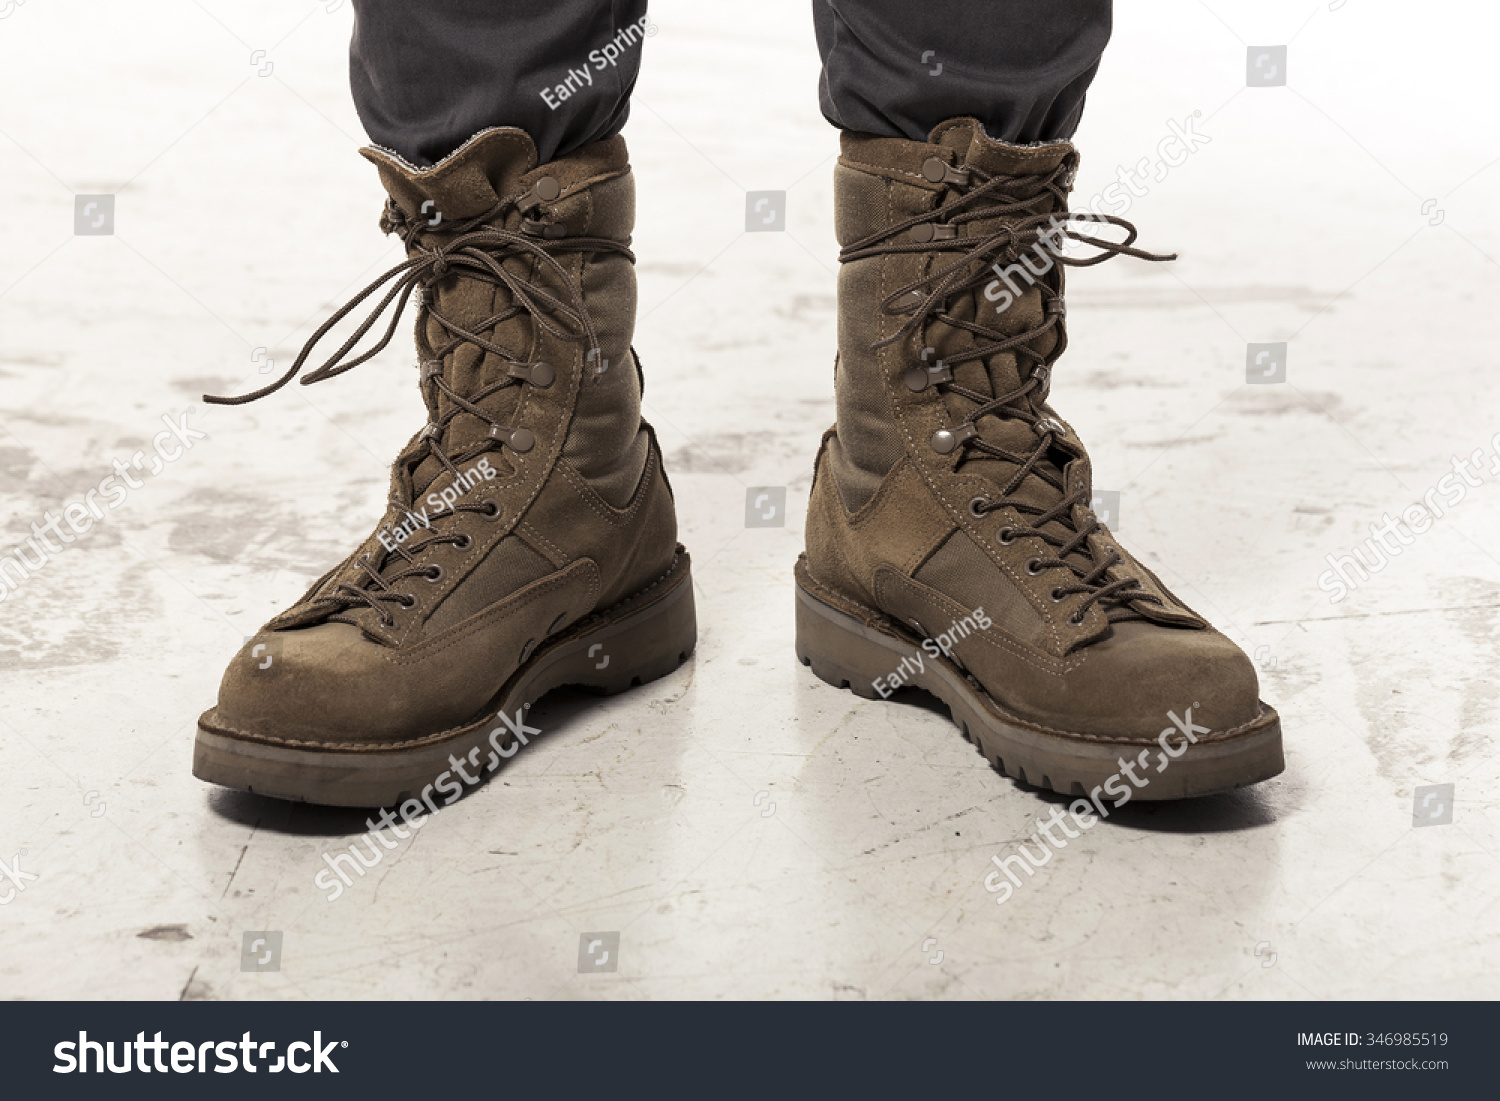 Brown Military Combat Boots Bsrjc Boots